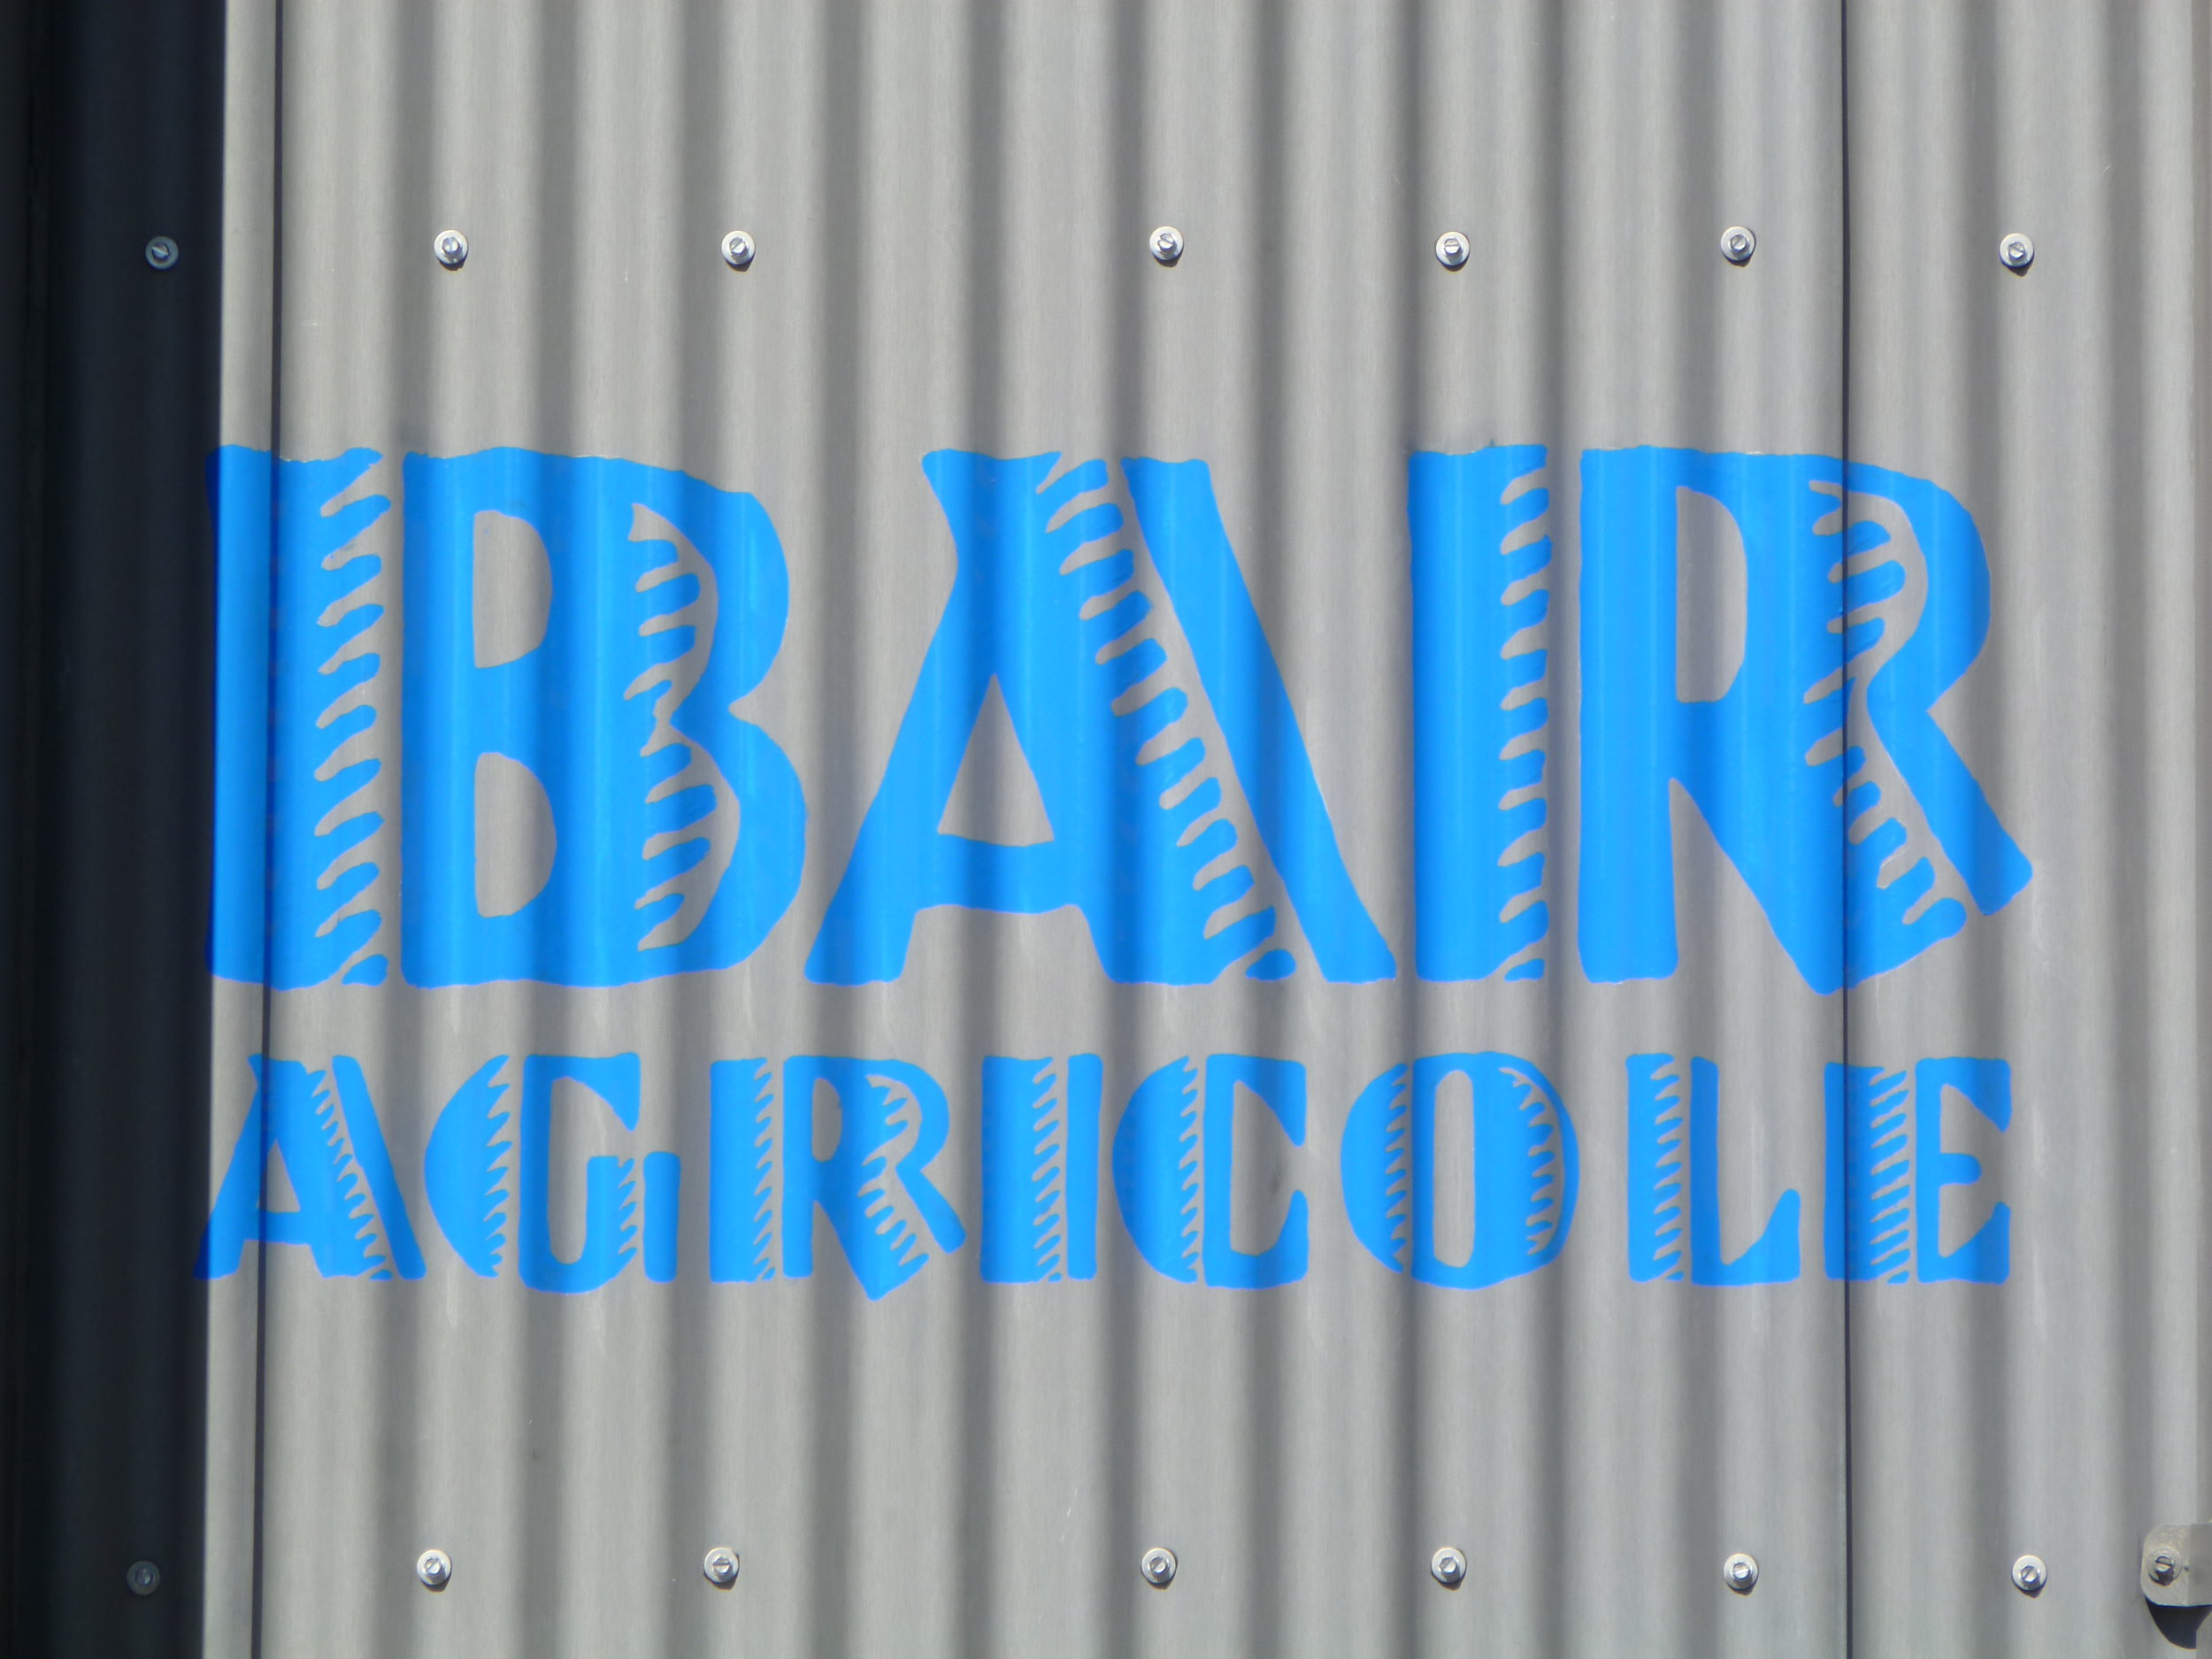 HAND-bar-agricole-small-sign-by-door_4915153782_o.jpg